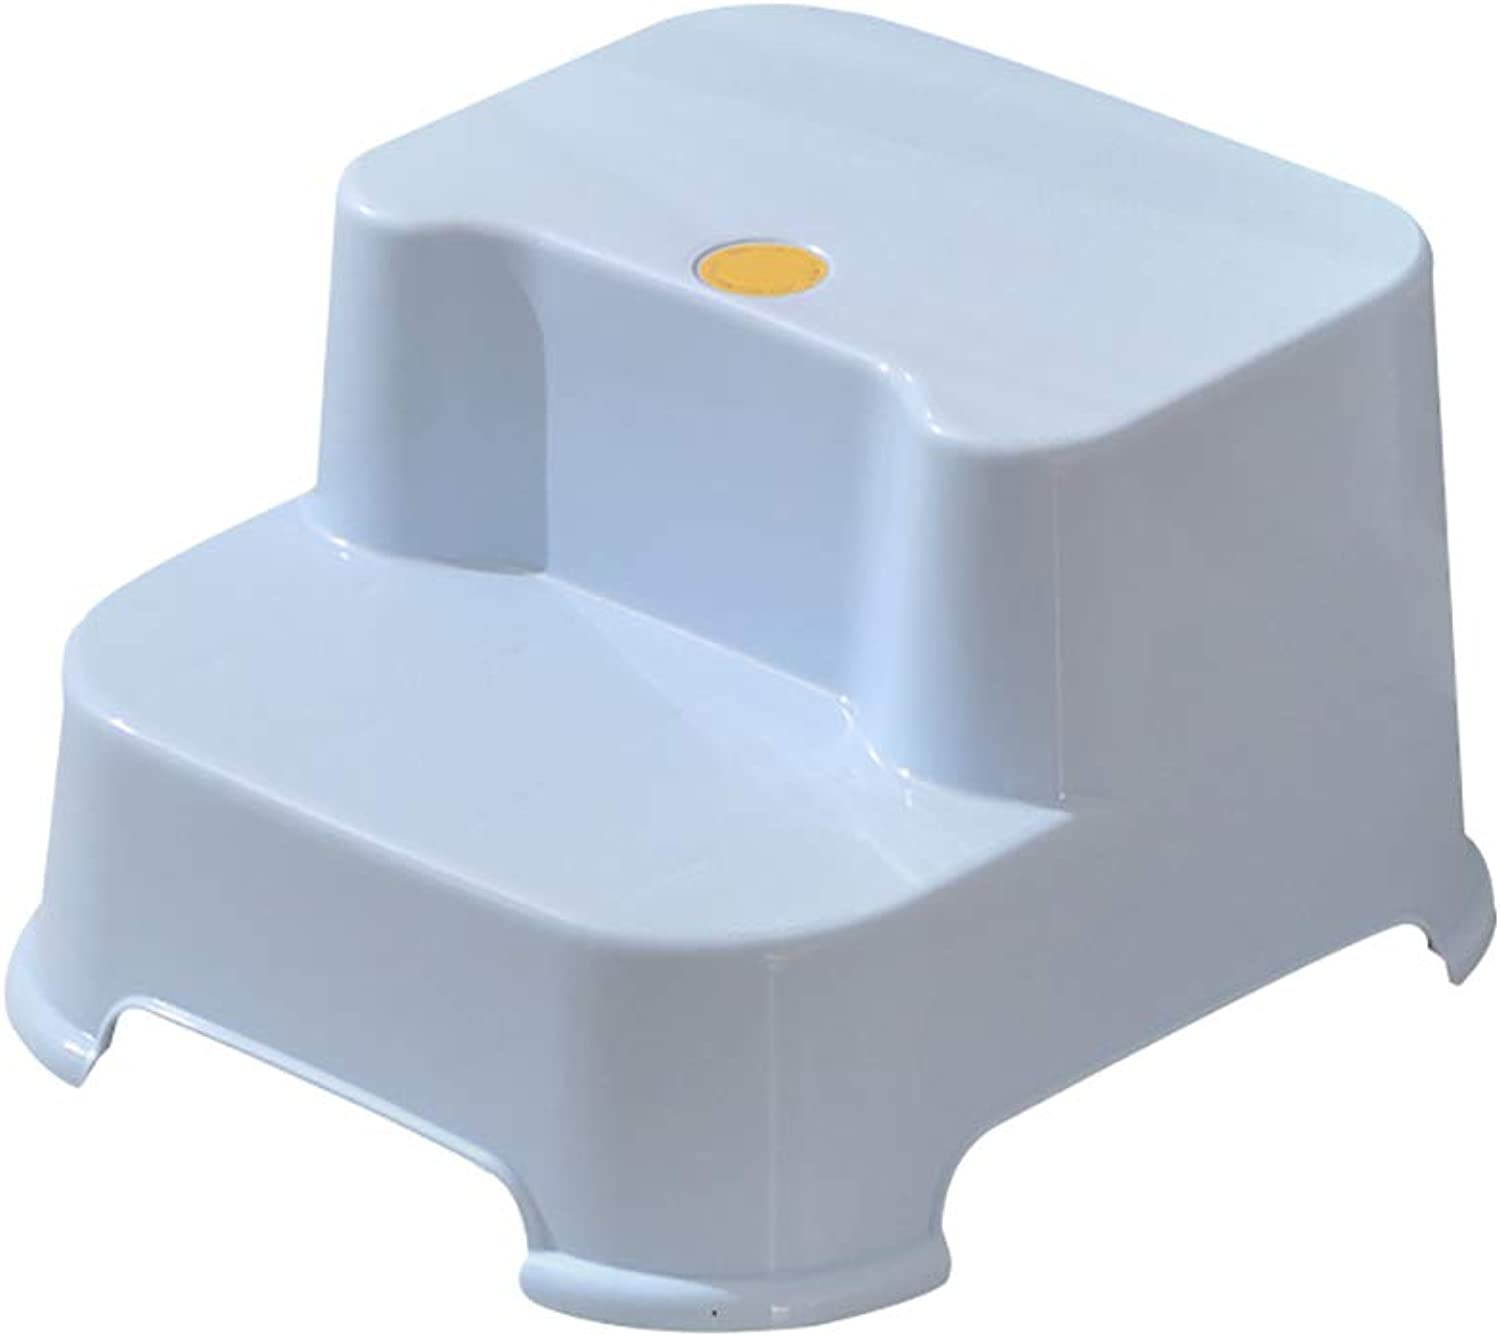 Kids Step Stool bluee, Take it Along in Bedroom, Kitchen, Bathroom and Living Room